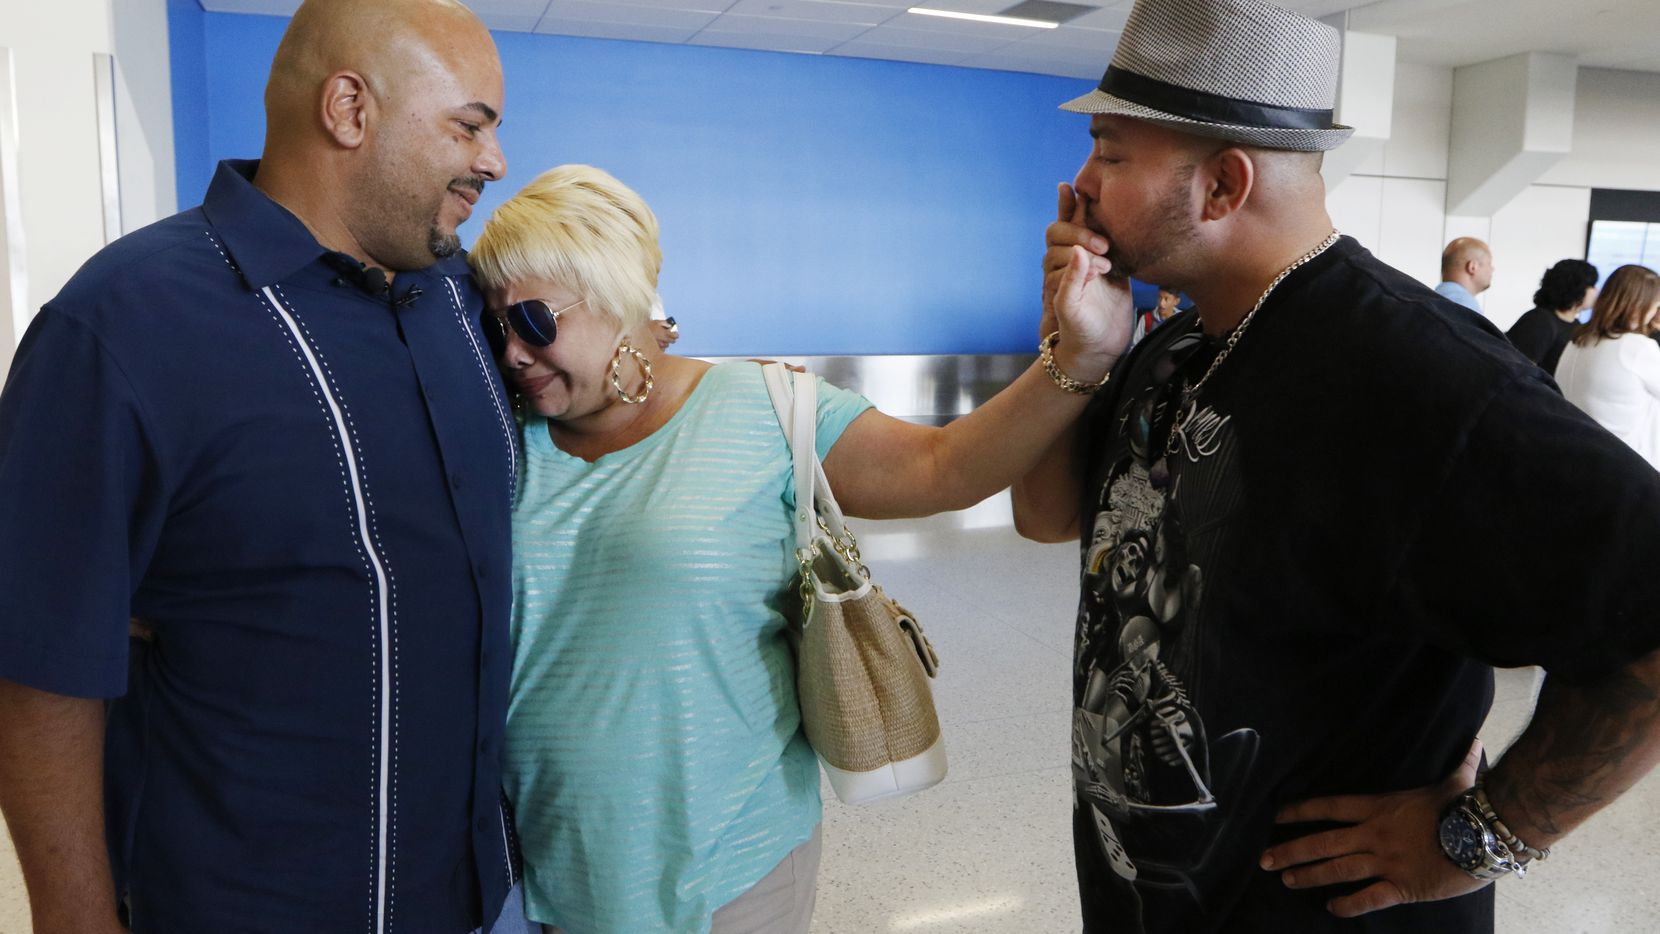 Anthony Wiggs (left) and Raymond Ramirez meet their biological mother, Elsie Ramirez, for the first time at DFW International Airport. The men were separated from their mother as infants, but a DNA search led them to her 47 years later.